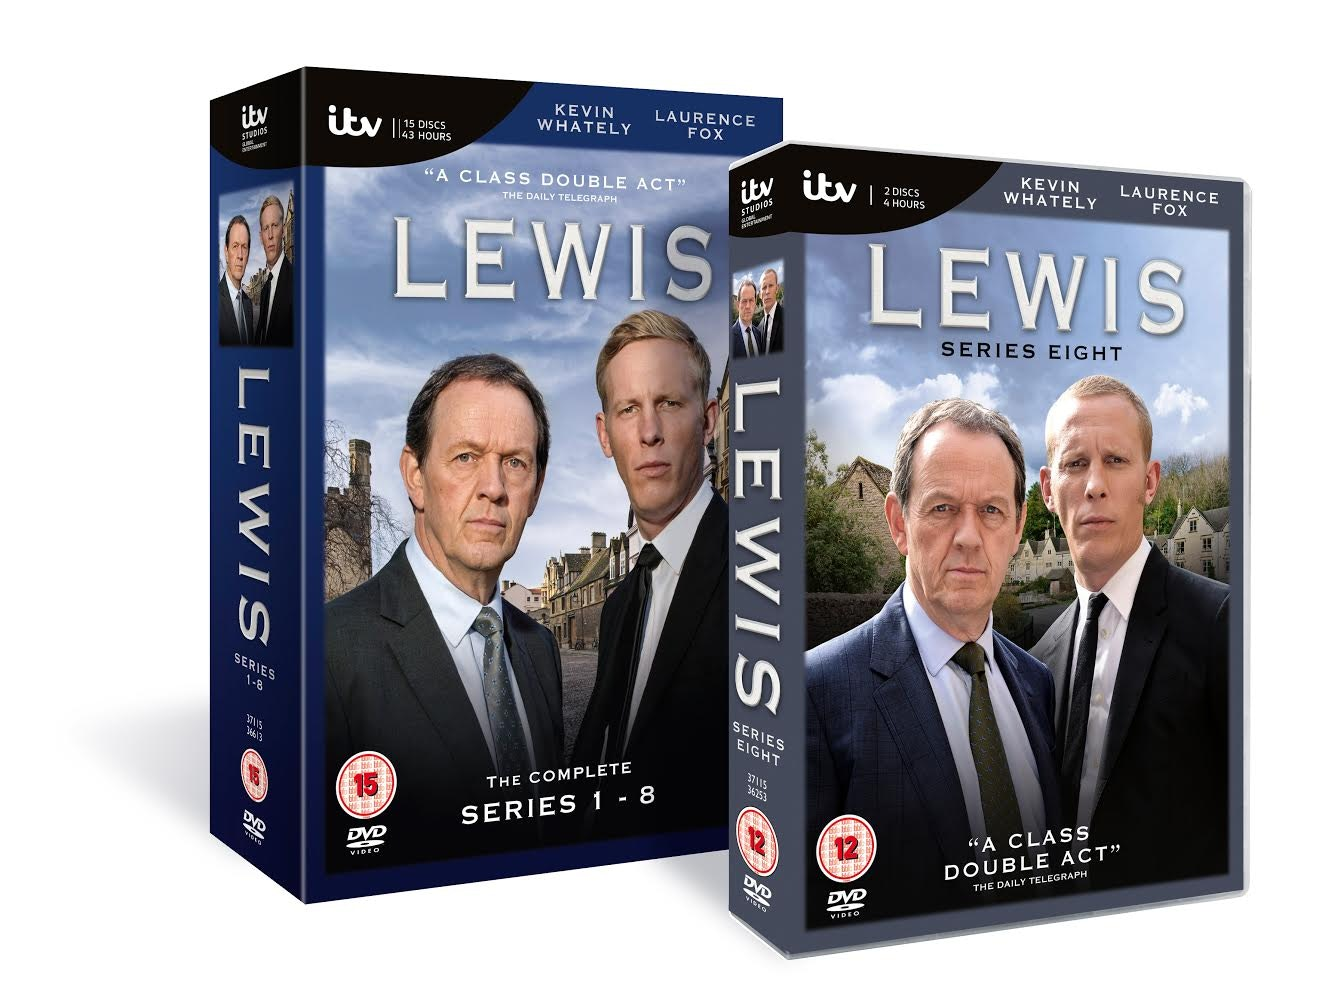 Lewis DVD sweepstakes